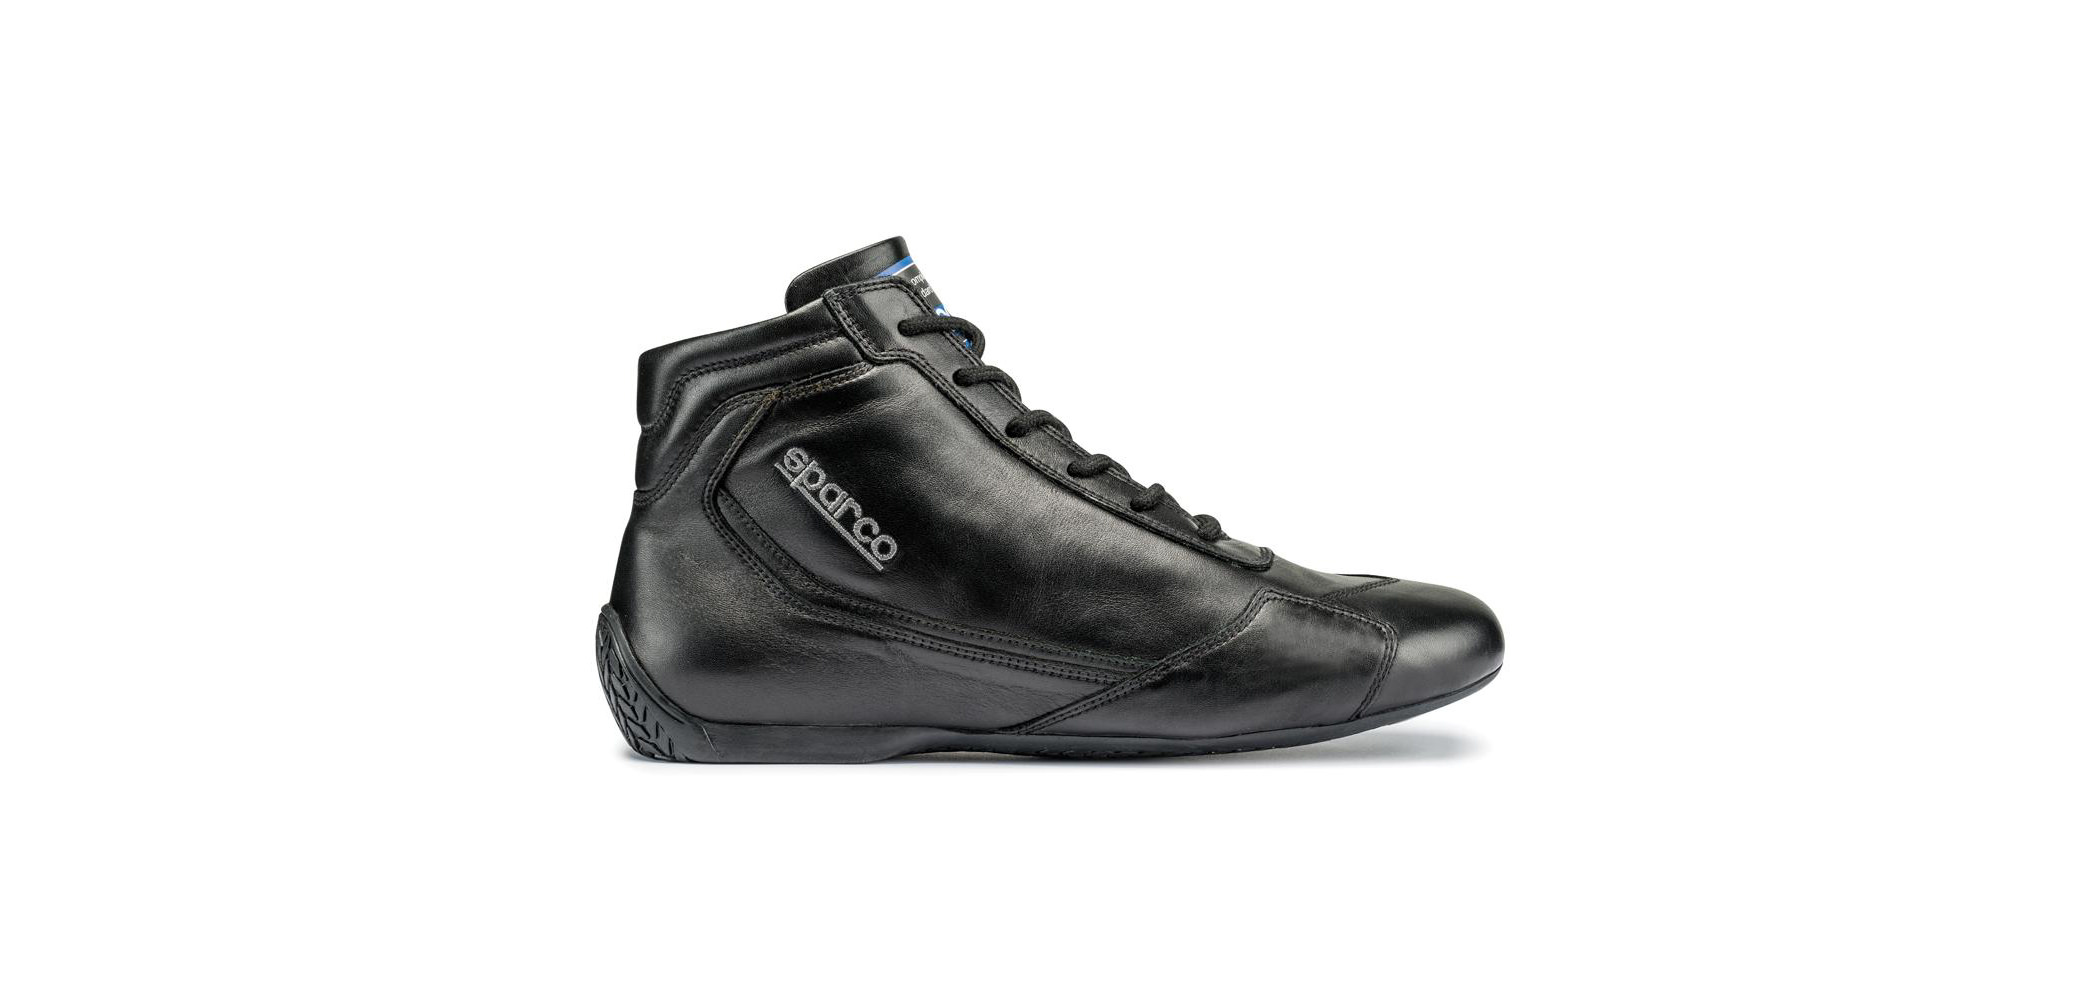 Sparco Slalom RB-3 Classic Racing Boots